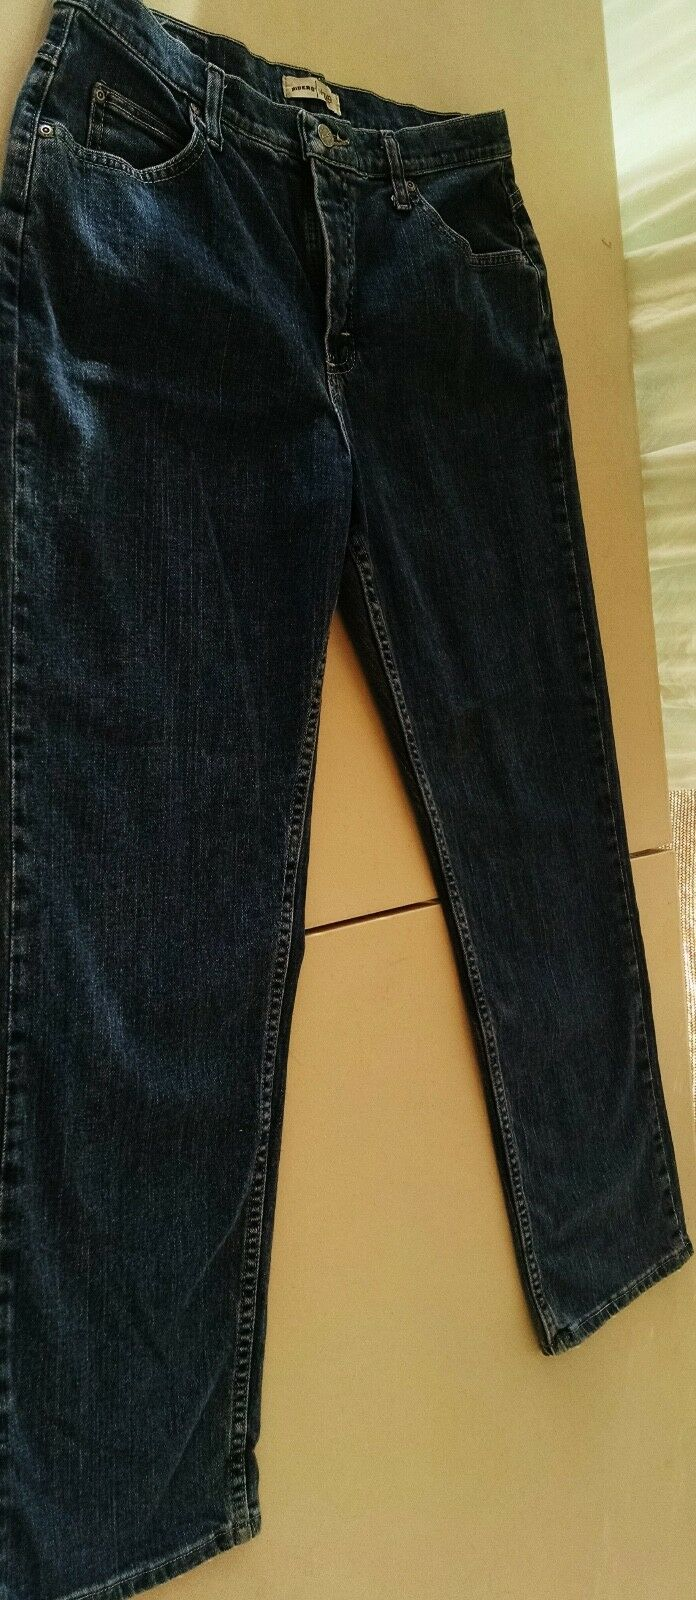 Riders Relaxed Jeans Ladies Size 12M bluee Denim Waist 32  Inseam 29  Rise 11